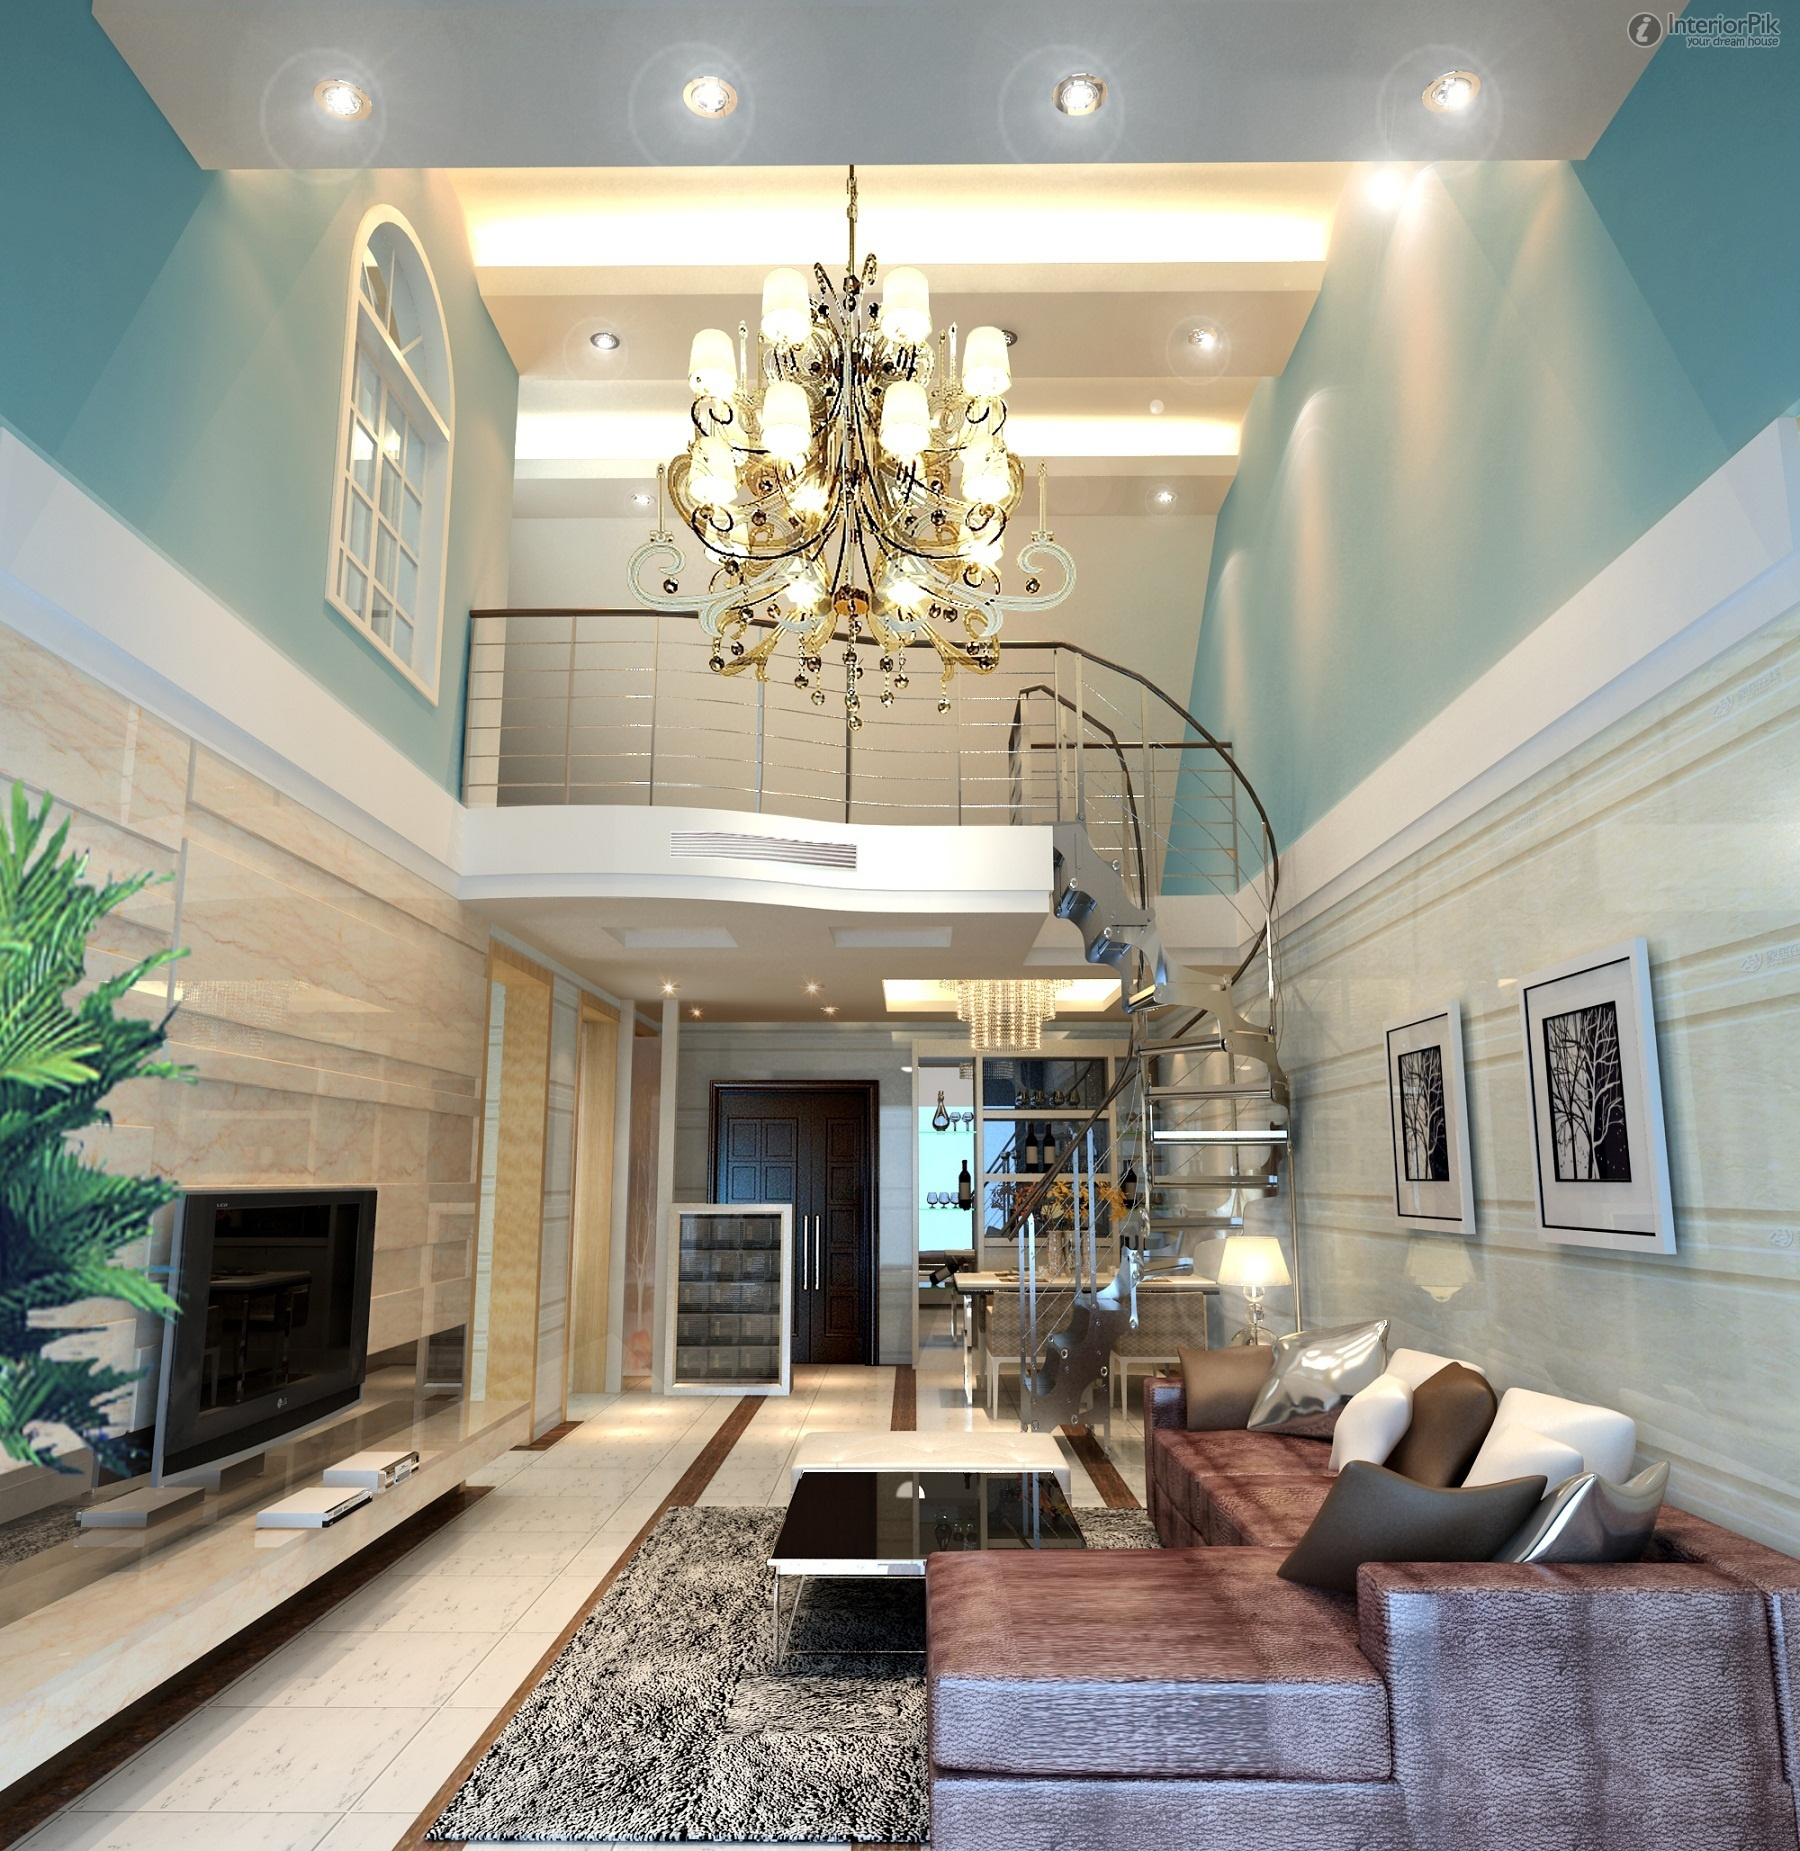 Decorating Tall Rooms: 3 Tips for Tall Wall Decor